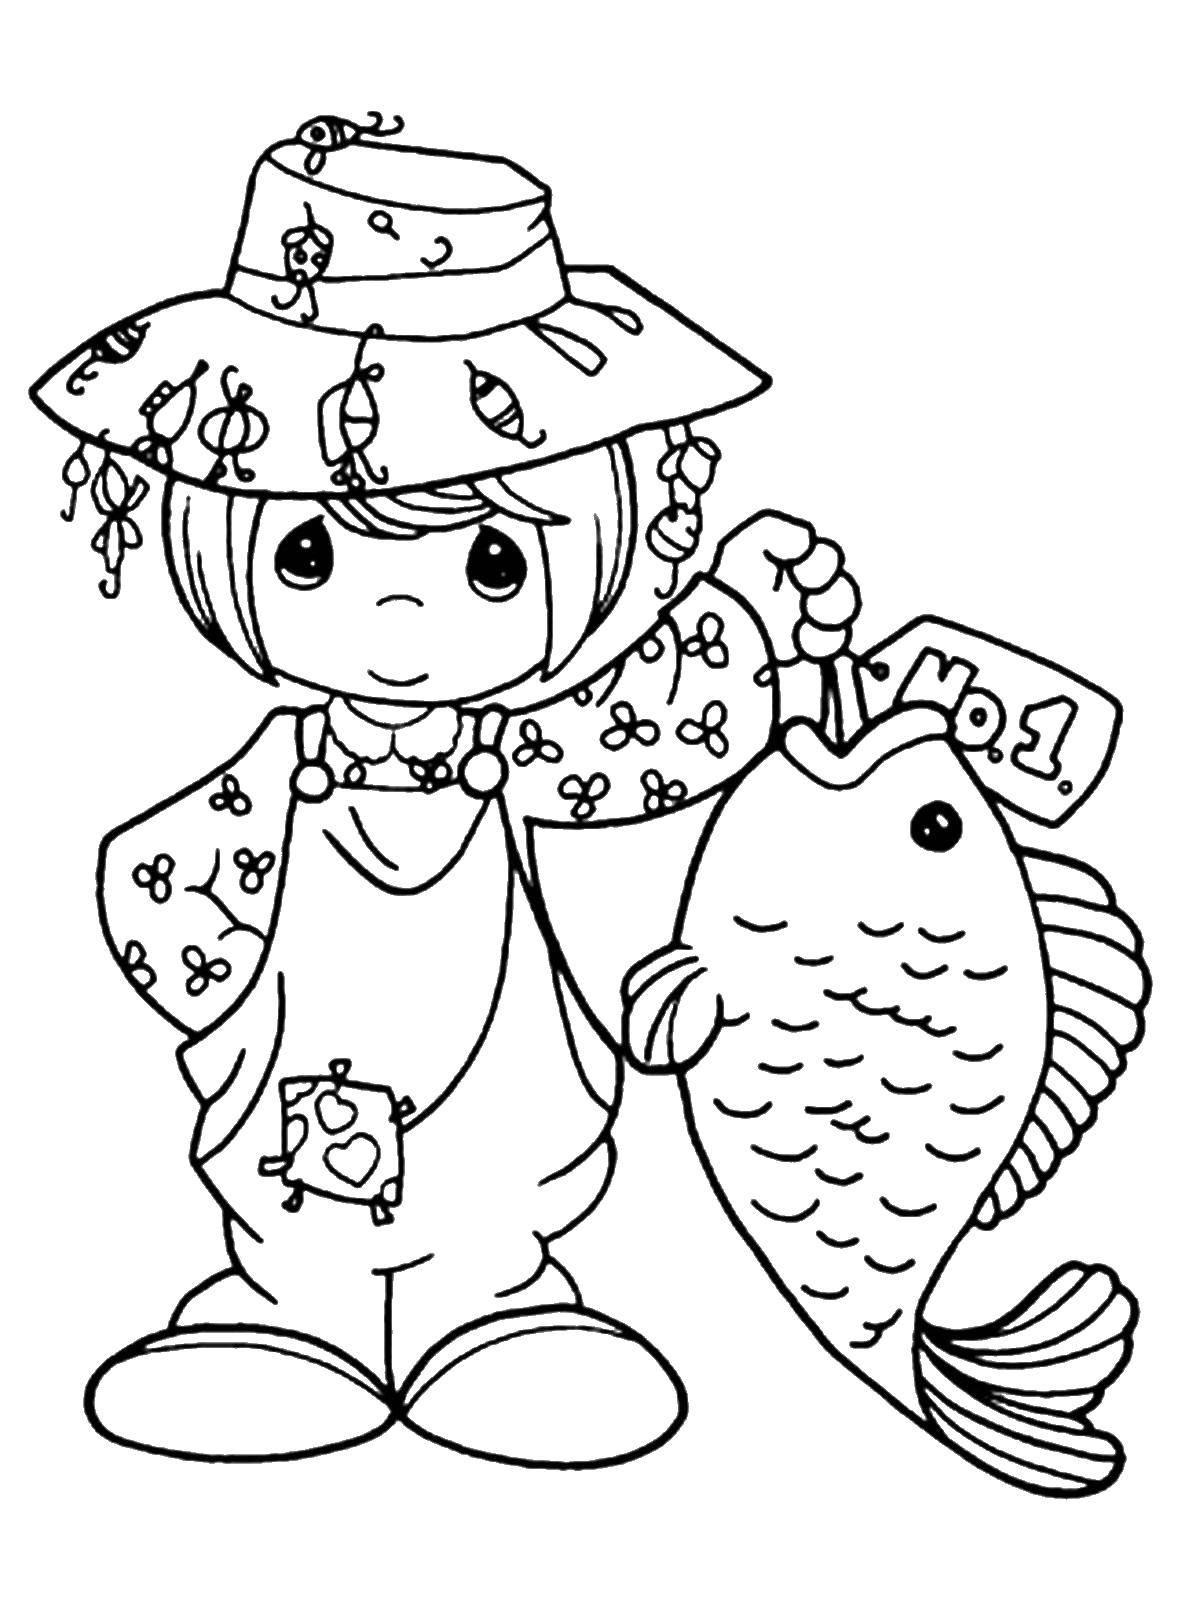 Fisherman With Mermaid Coloring Page Vector Barbie Fairytopia ... | 1600x1200